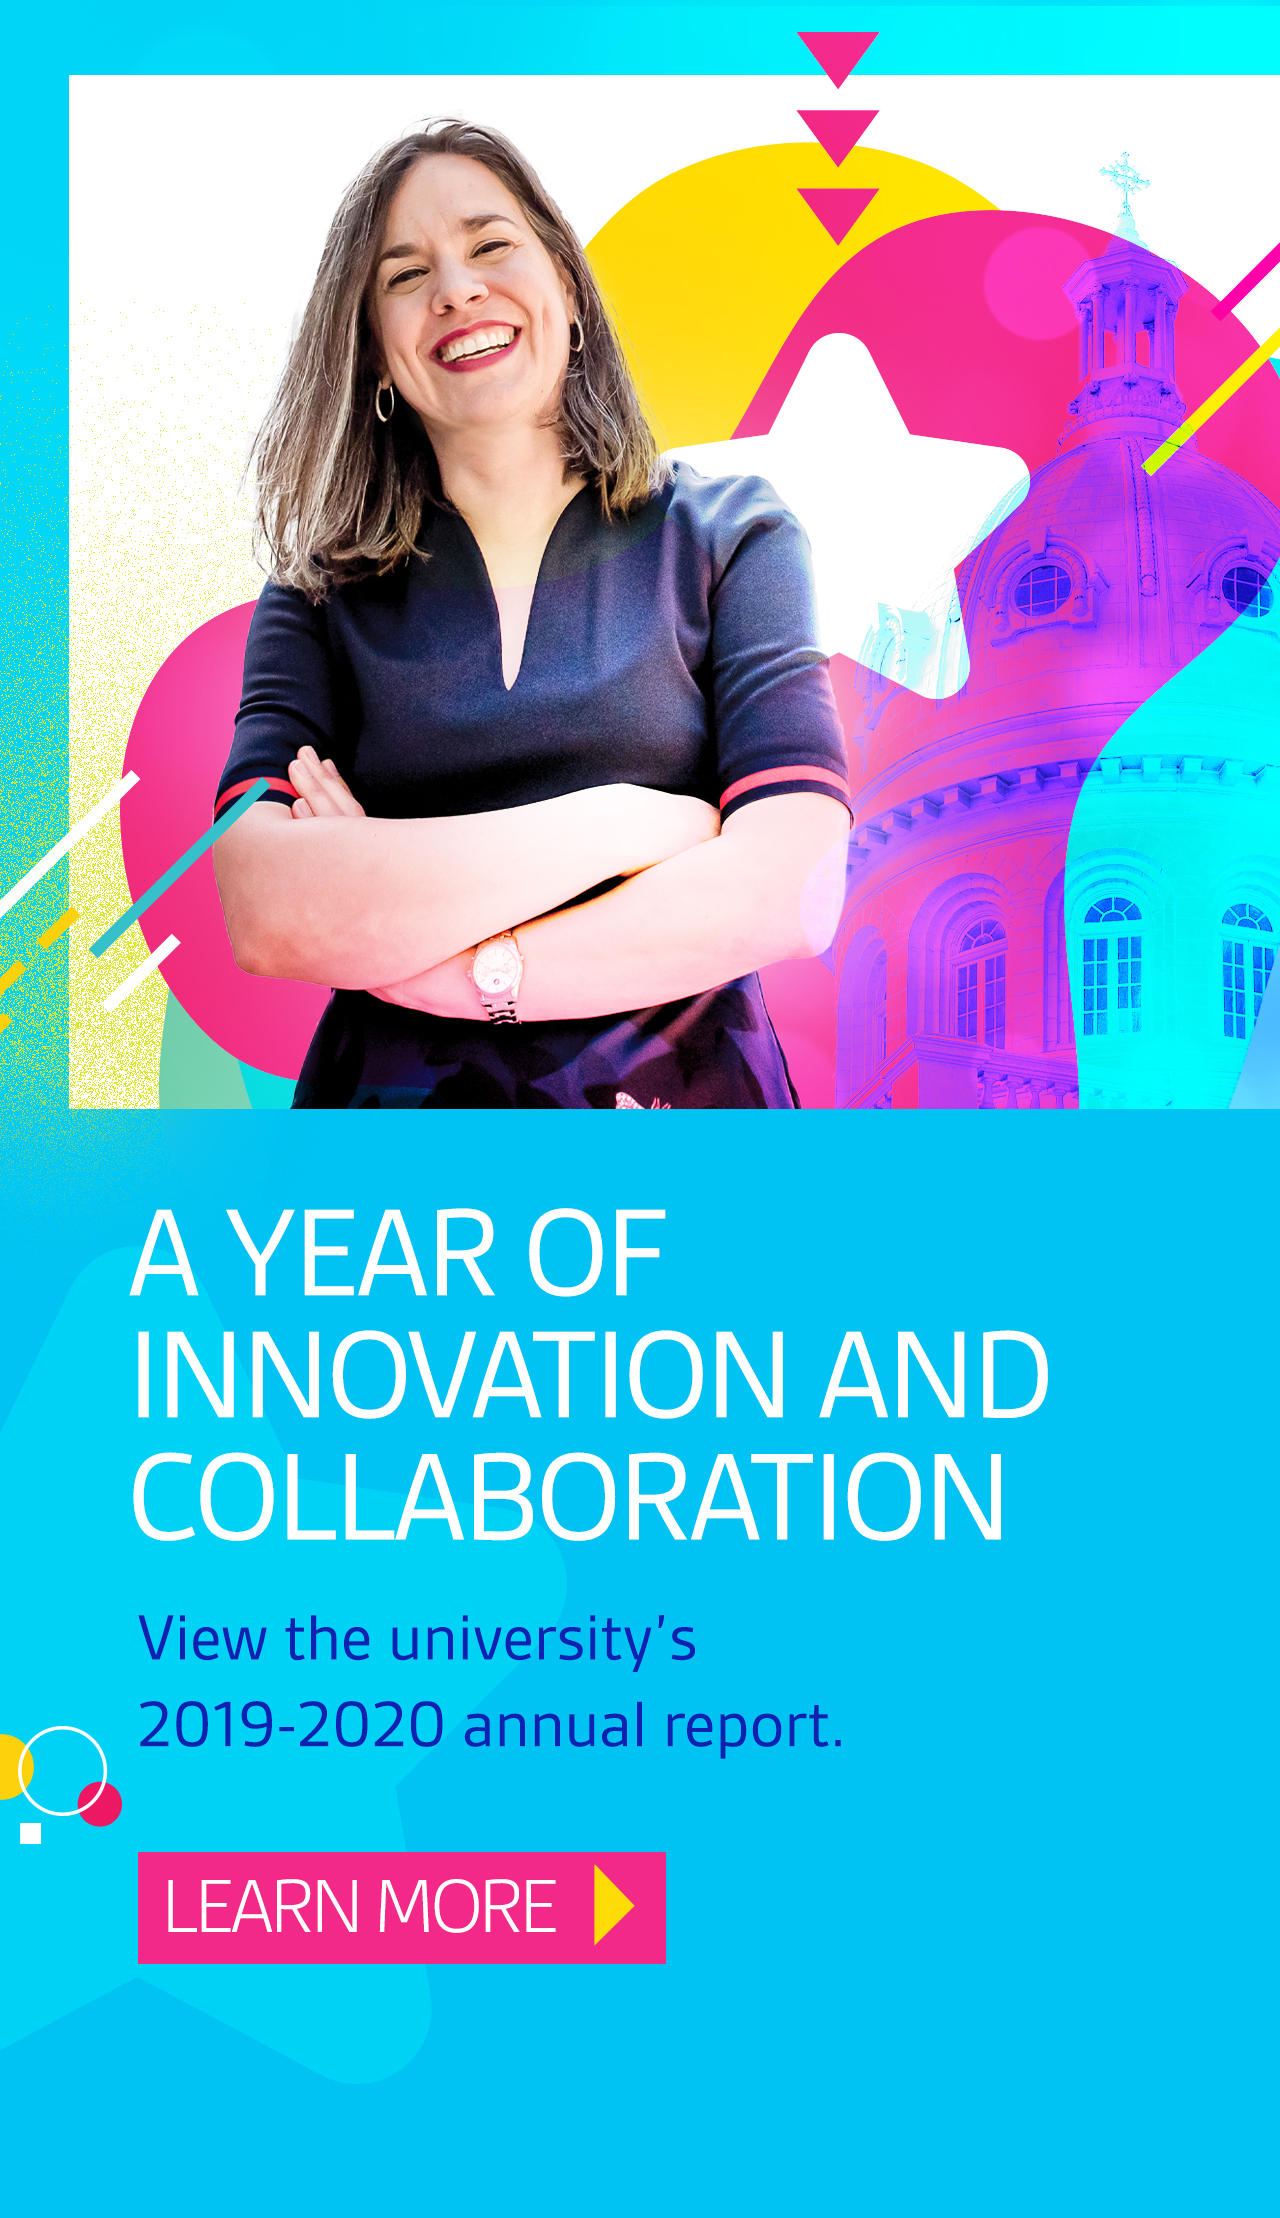 A year of innovation and collaboration. View the university's 2019-2020 annual report